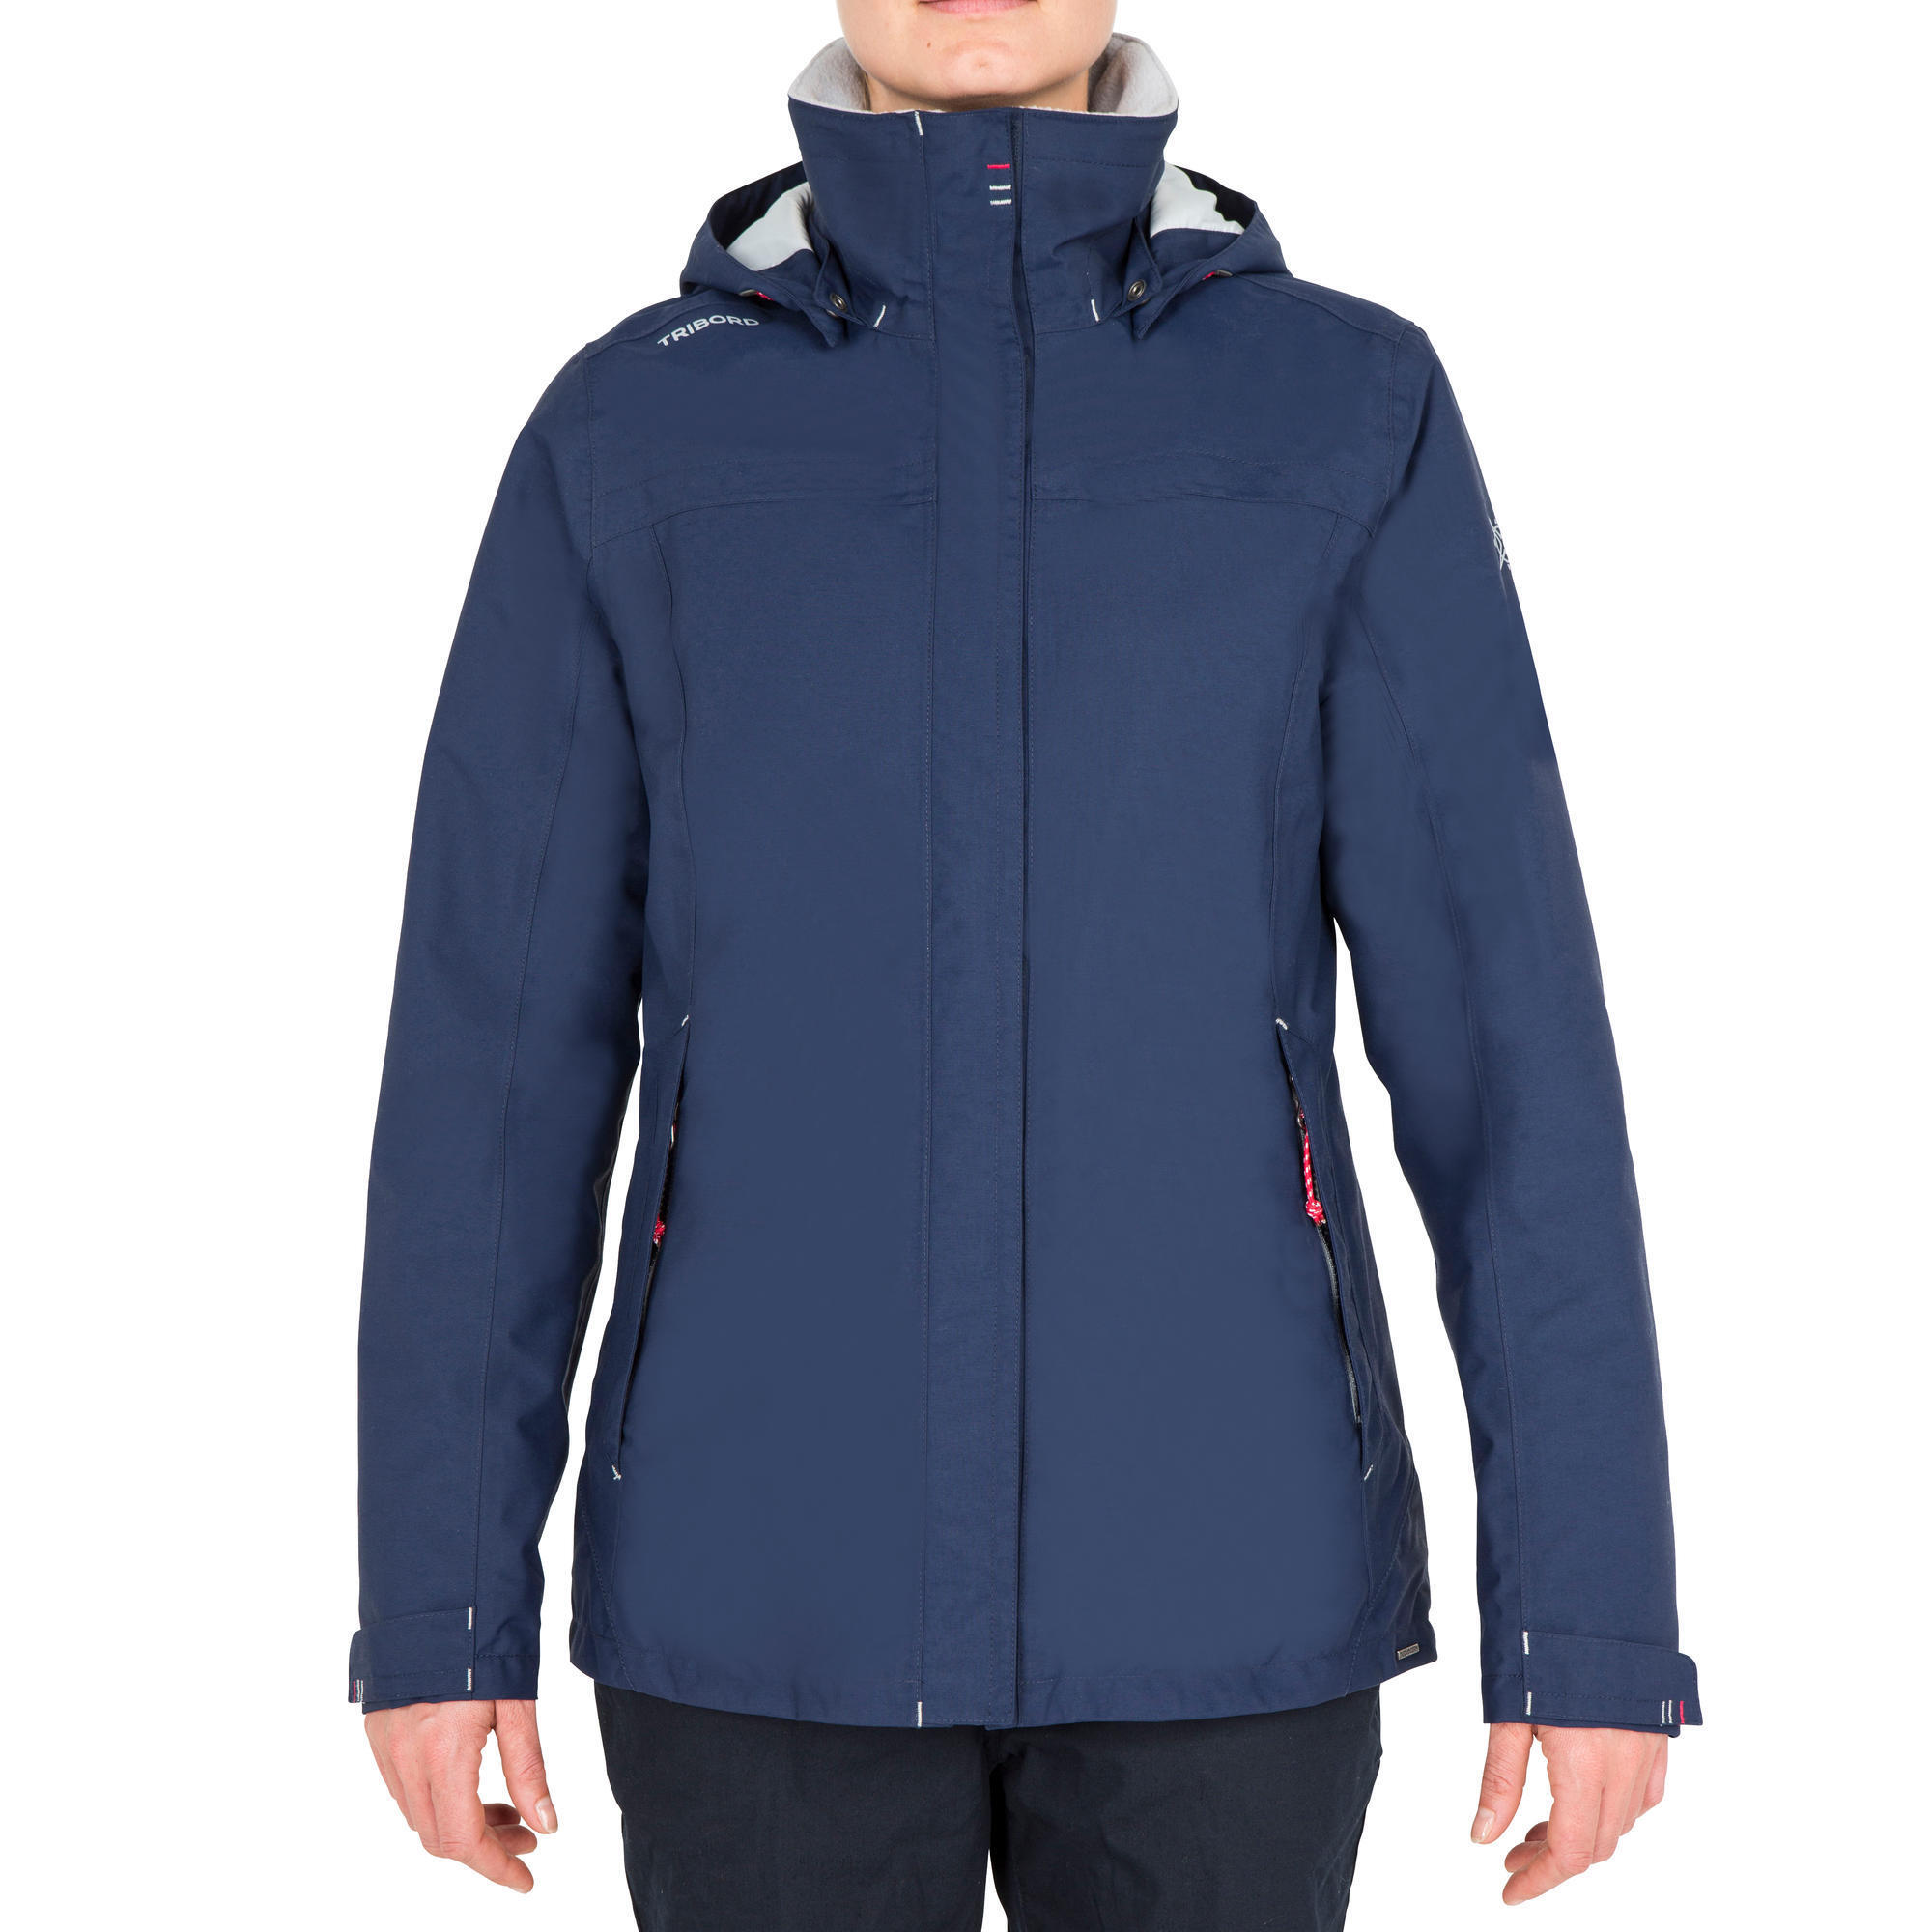 Veste femme burton of london